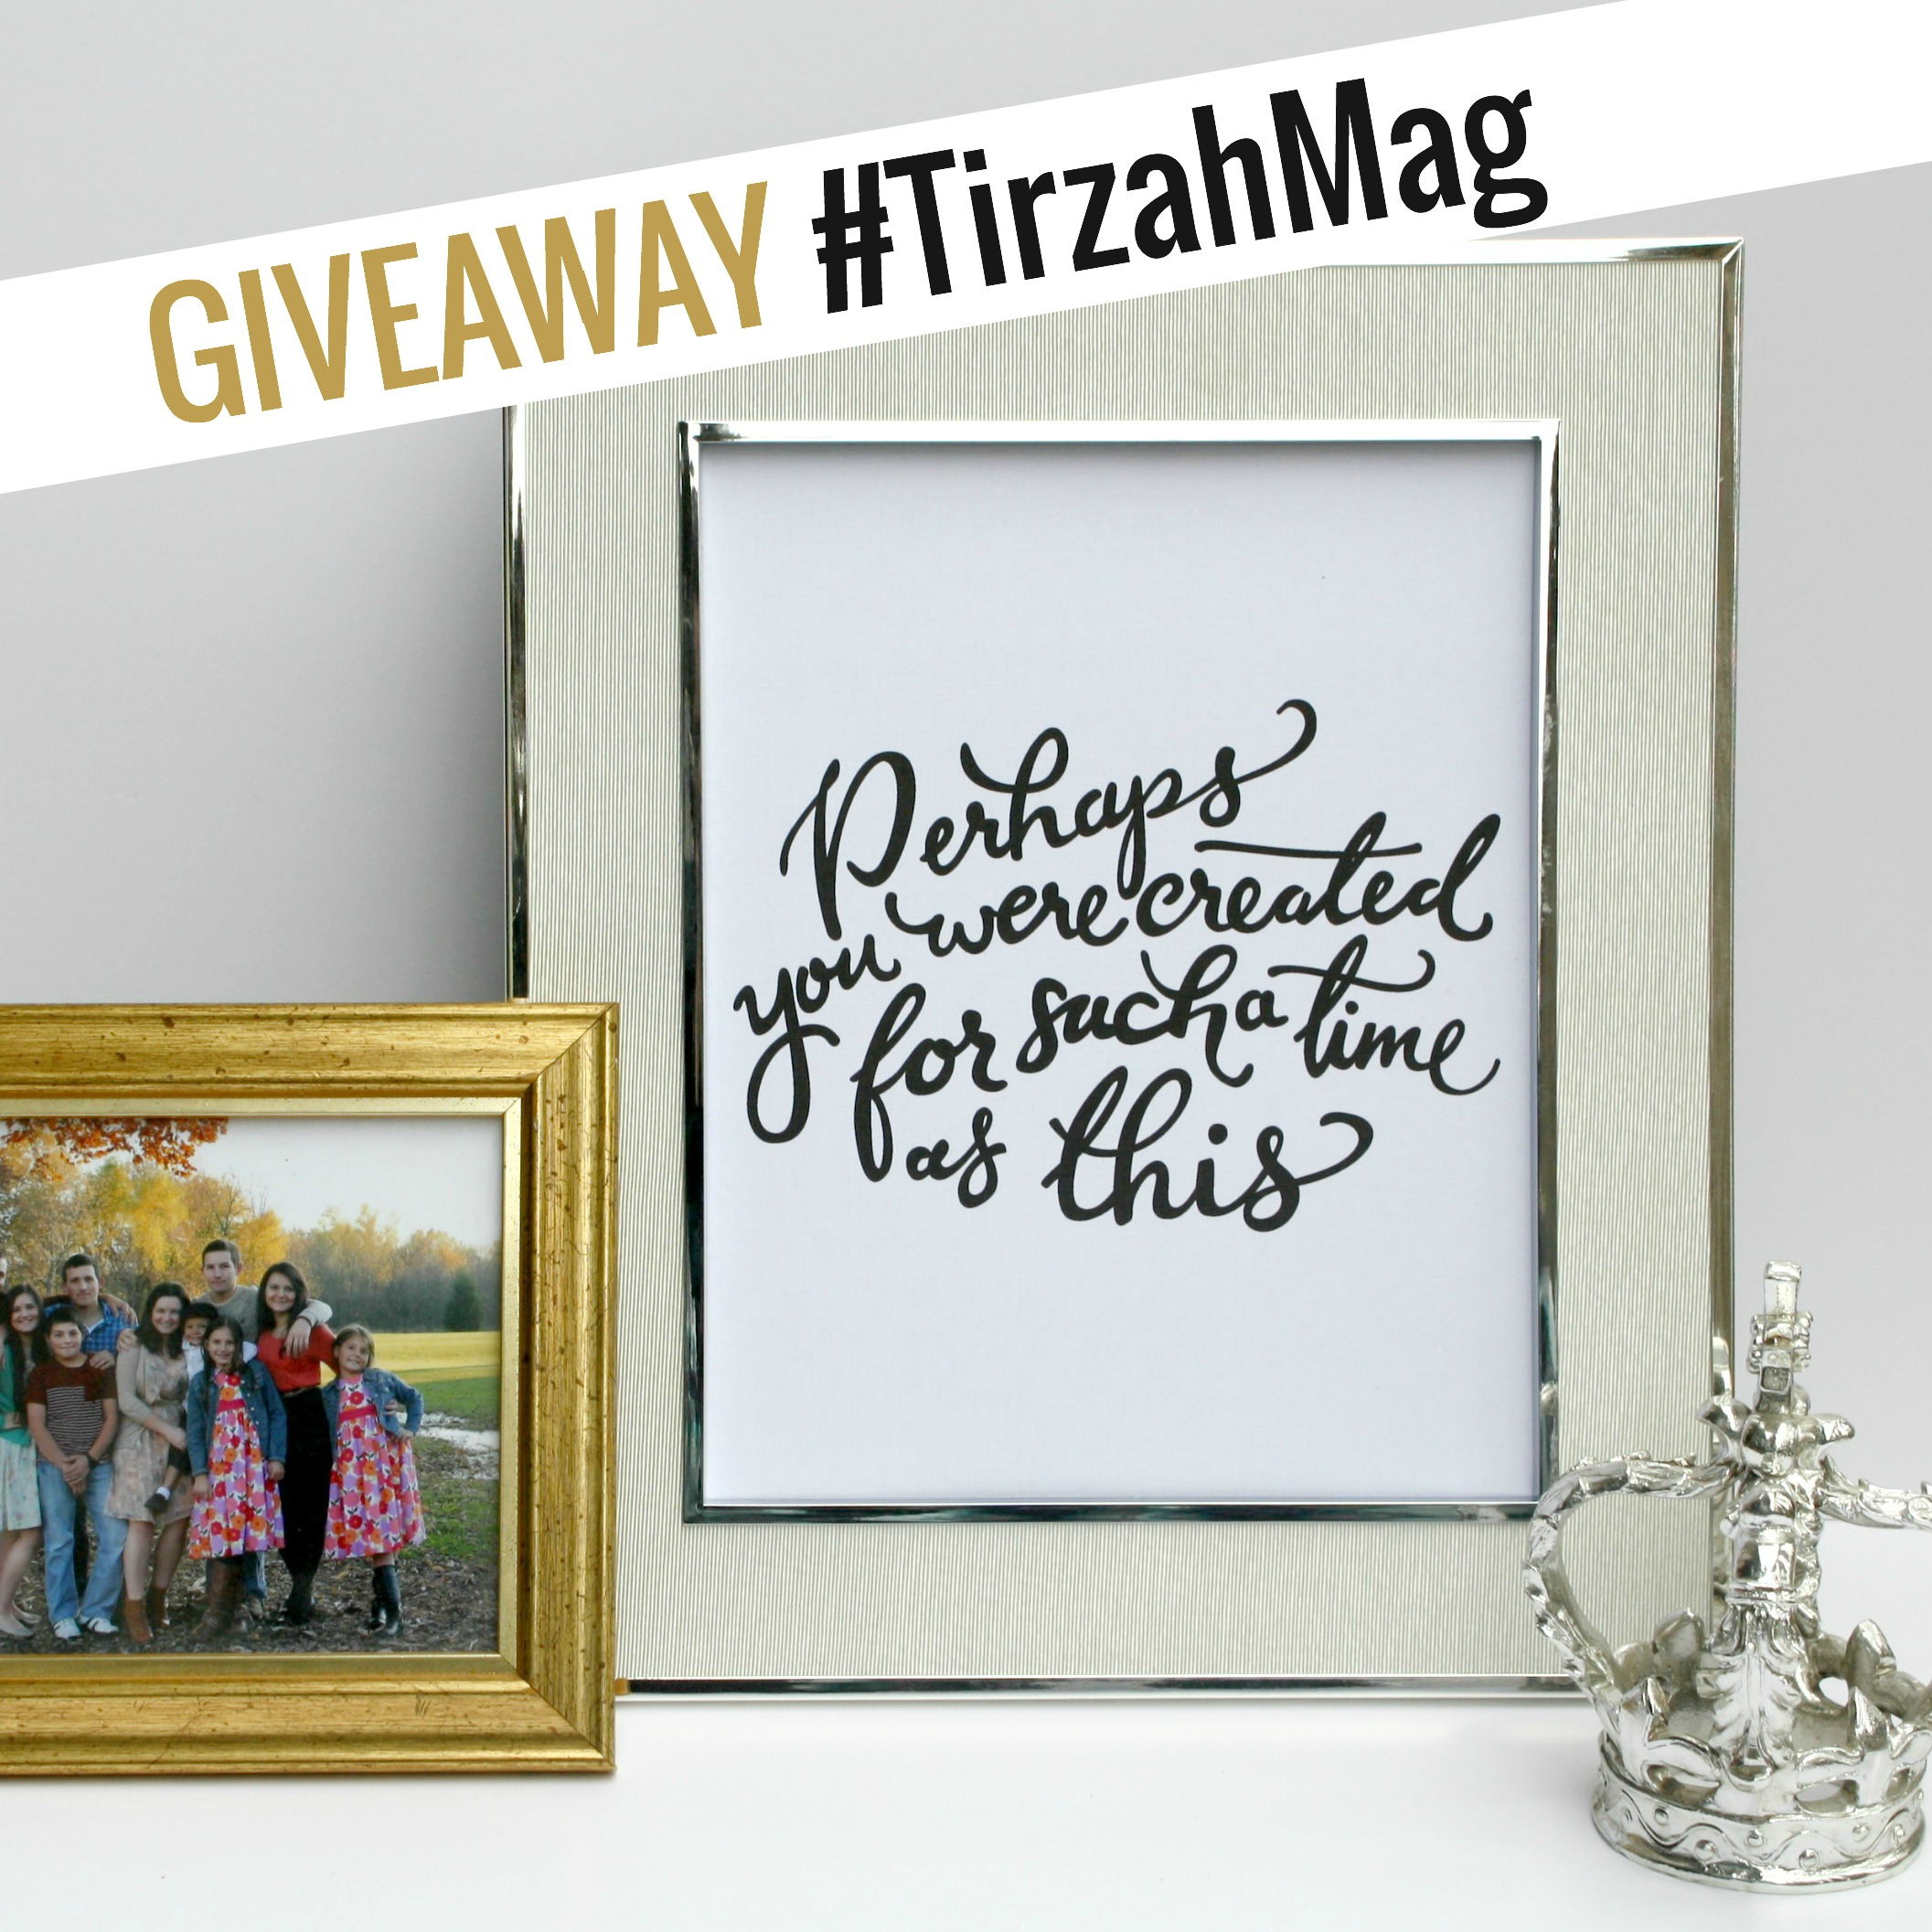 giveaway with Tirzah Mag